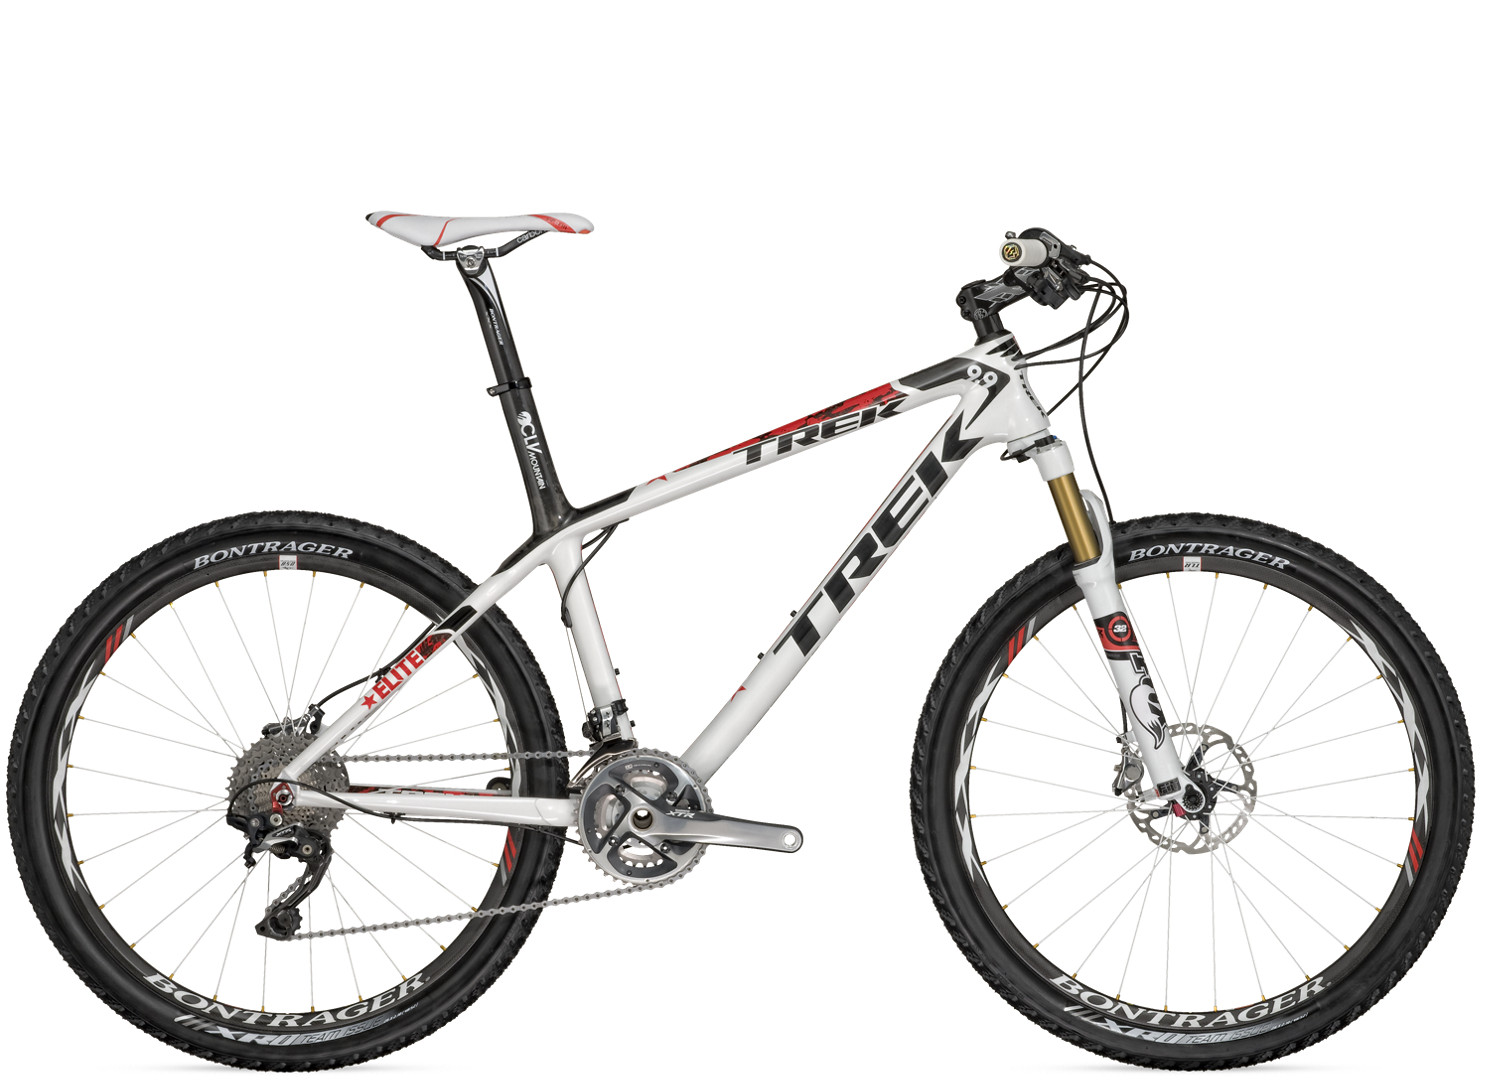 2012 Trek Elite 9.9 SSL Bike 26892